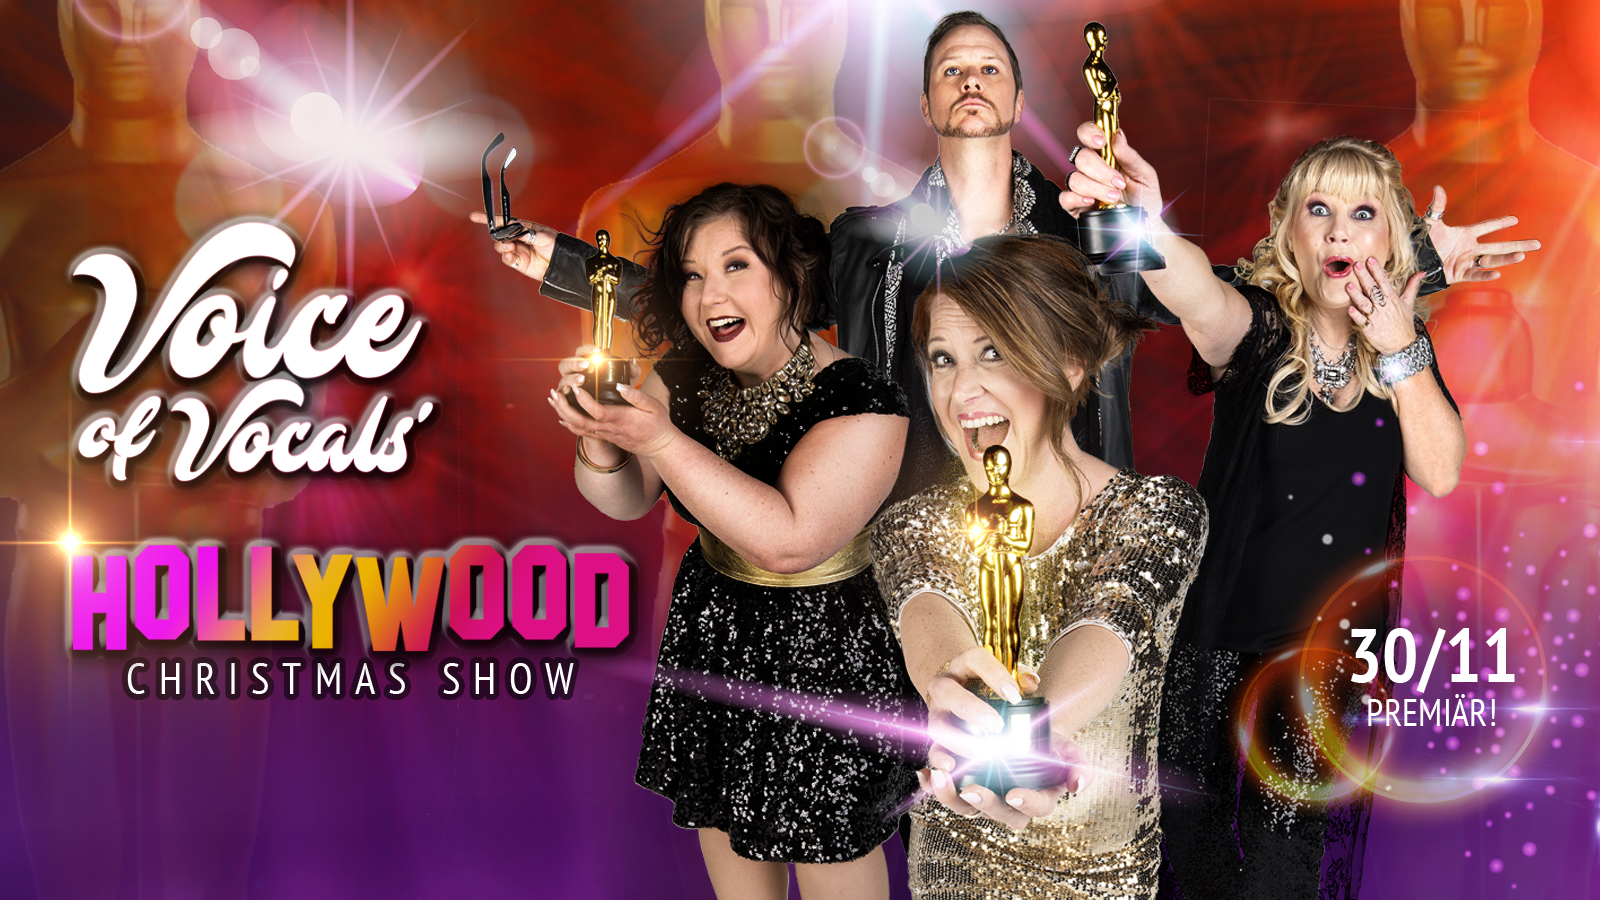 Julbord 2018 - Hollywood Christmas Show